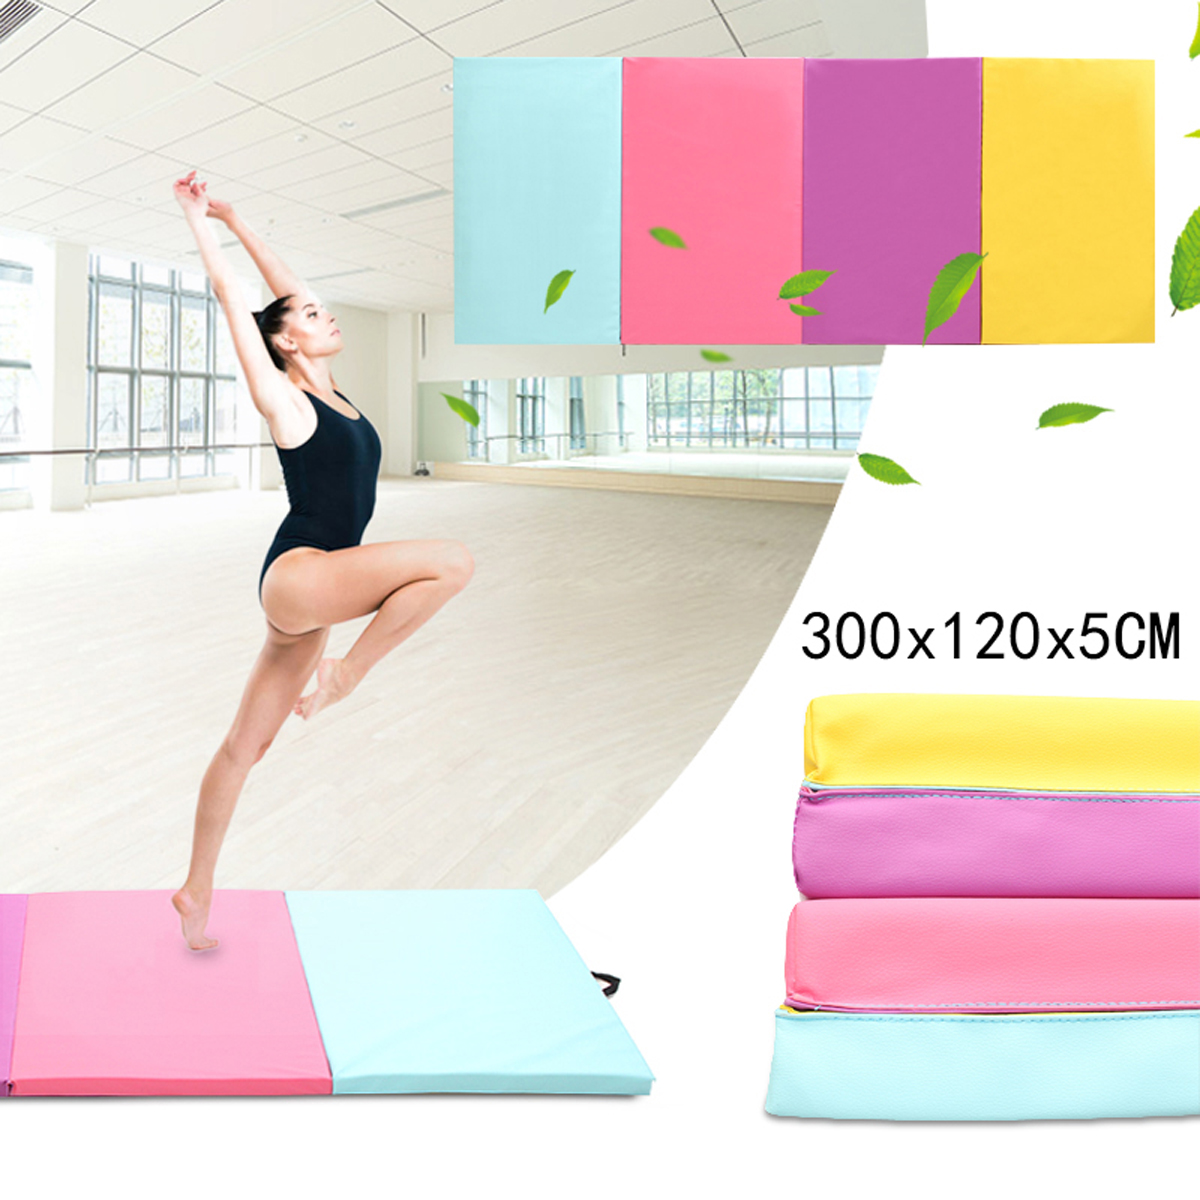 Foldable Gymnastics Mats Indoor Sports Folding Fitness Gym Exercise Yoga Mat Pad Outdoor Training Body Building Mattress iunio yoga mats 15mm fitness mat for body building exercise pilates home gym training folding eva pad outdoor camping yoga mat